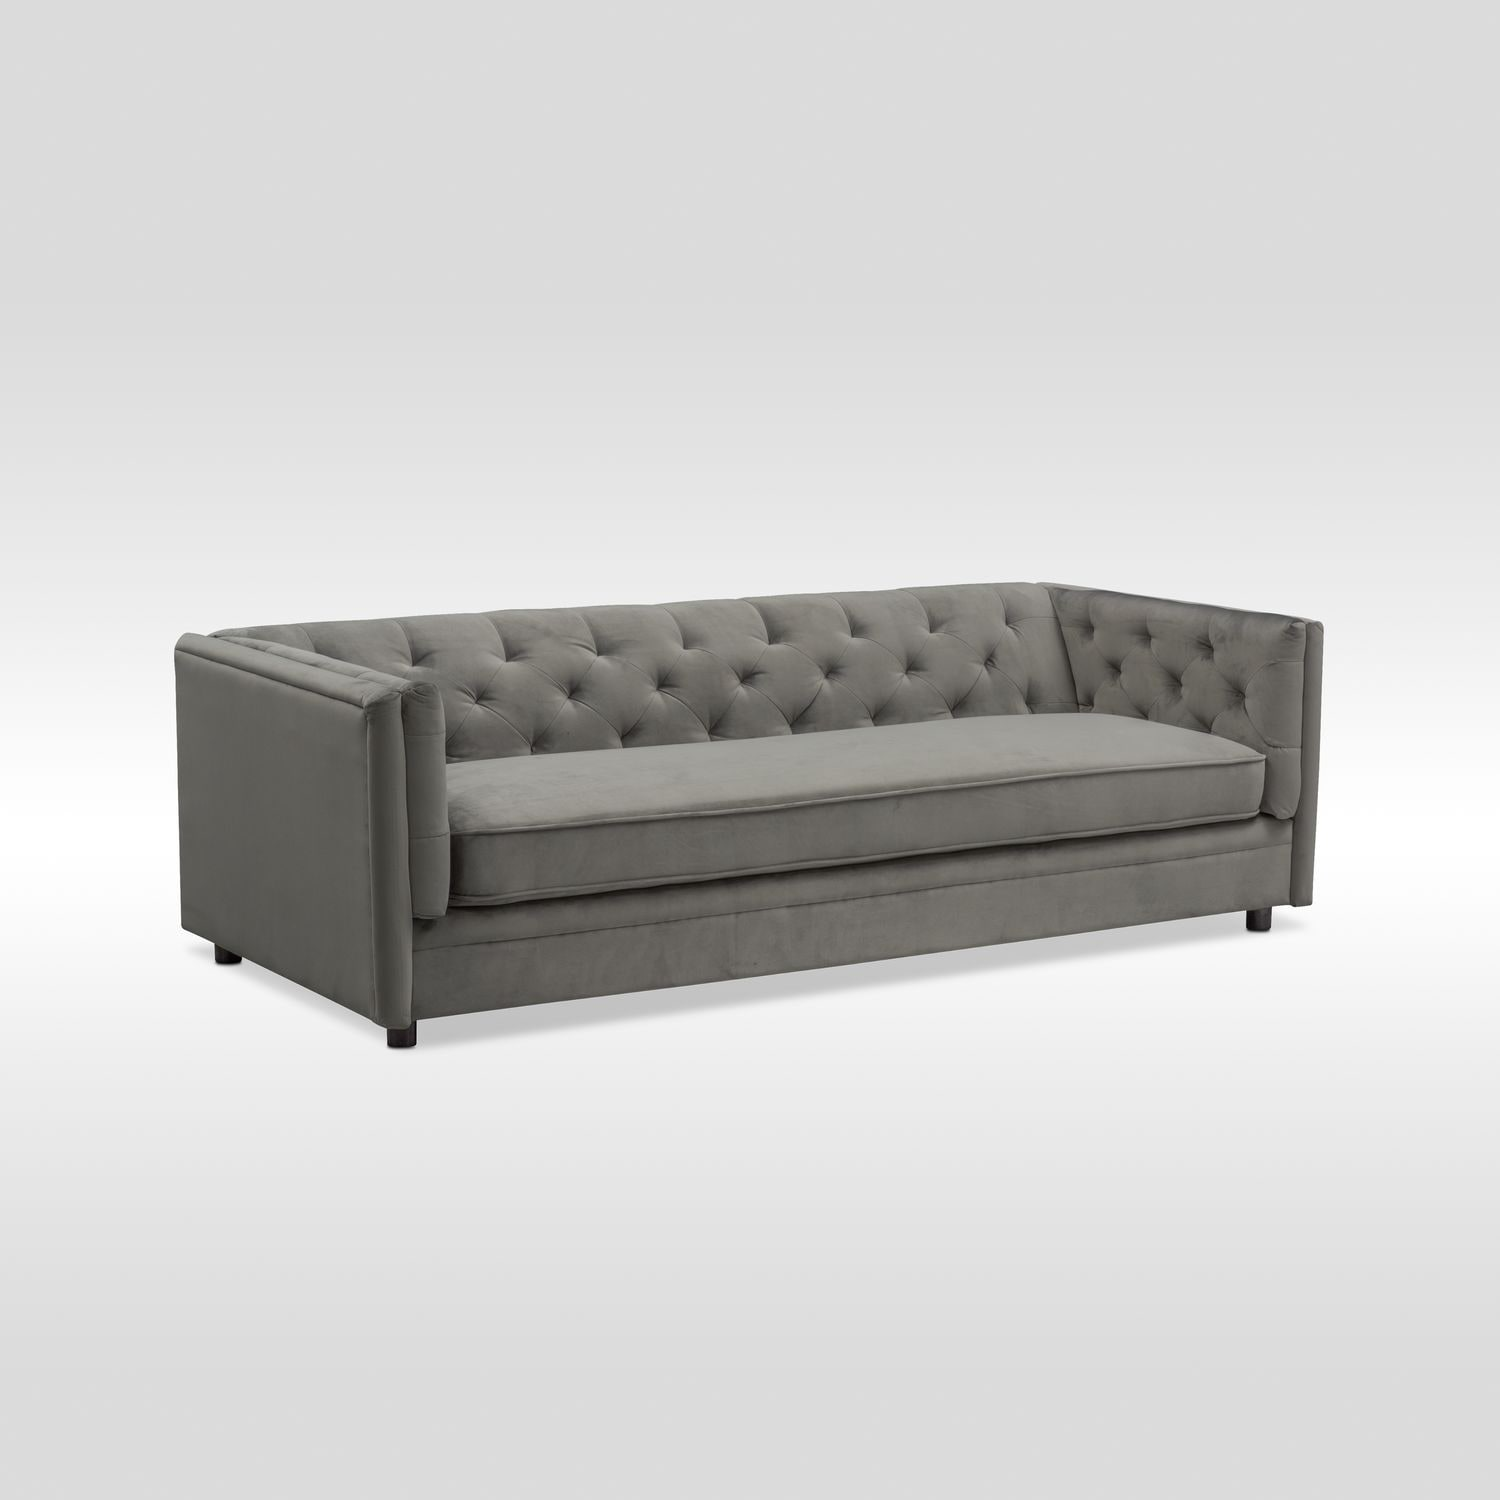 Gabe Sofa - Flannel | Value City Furniture and Mattresses